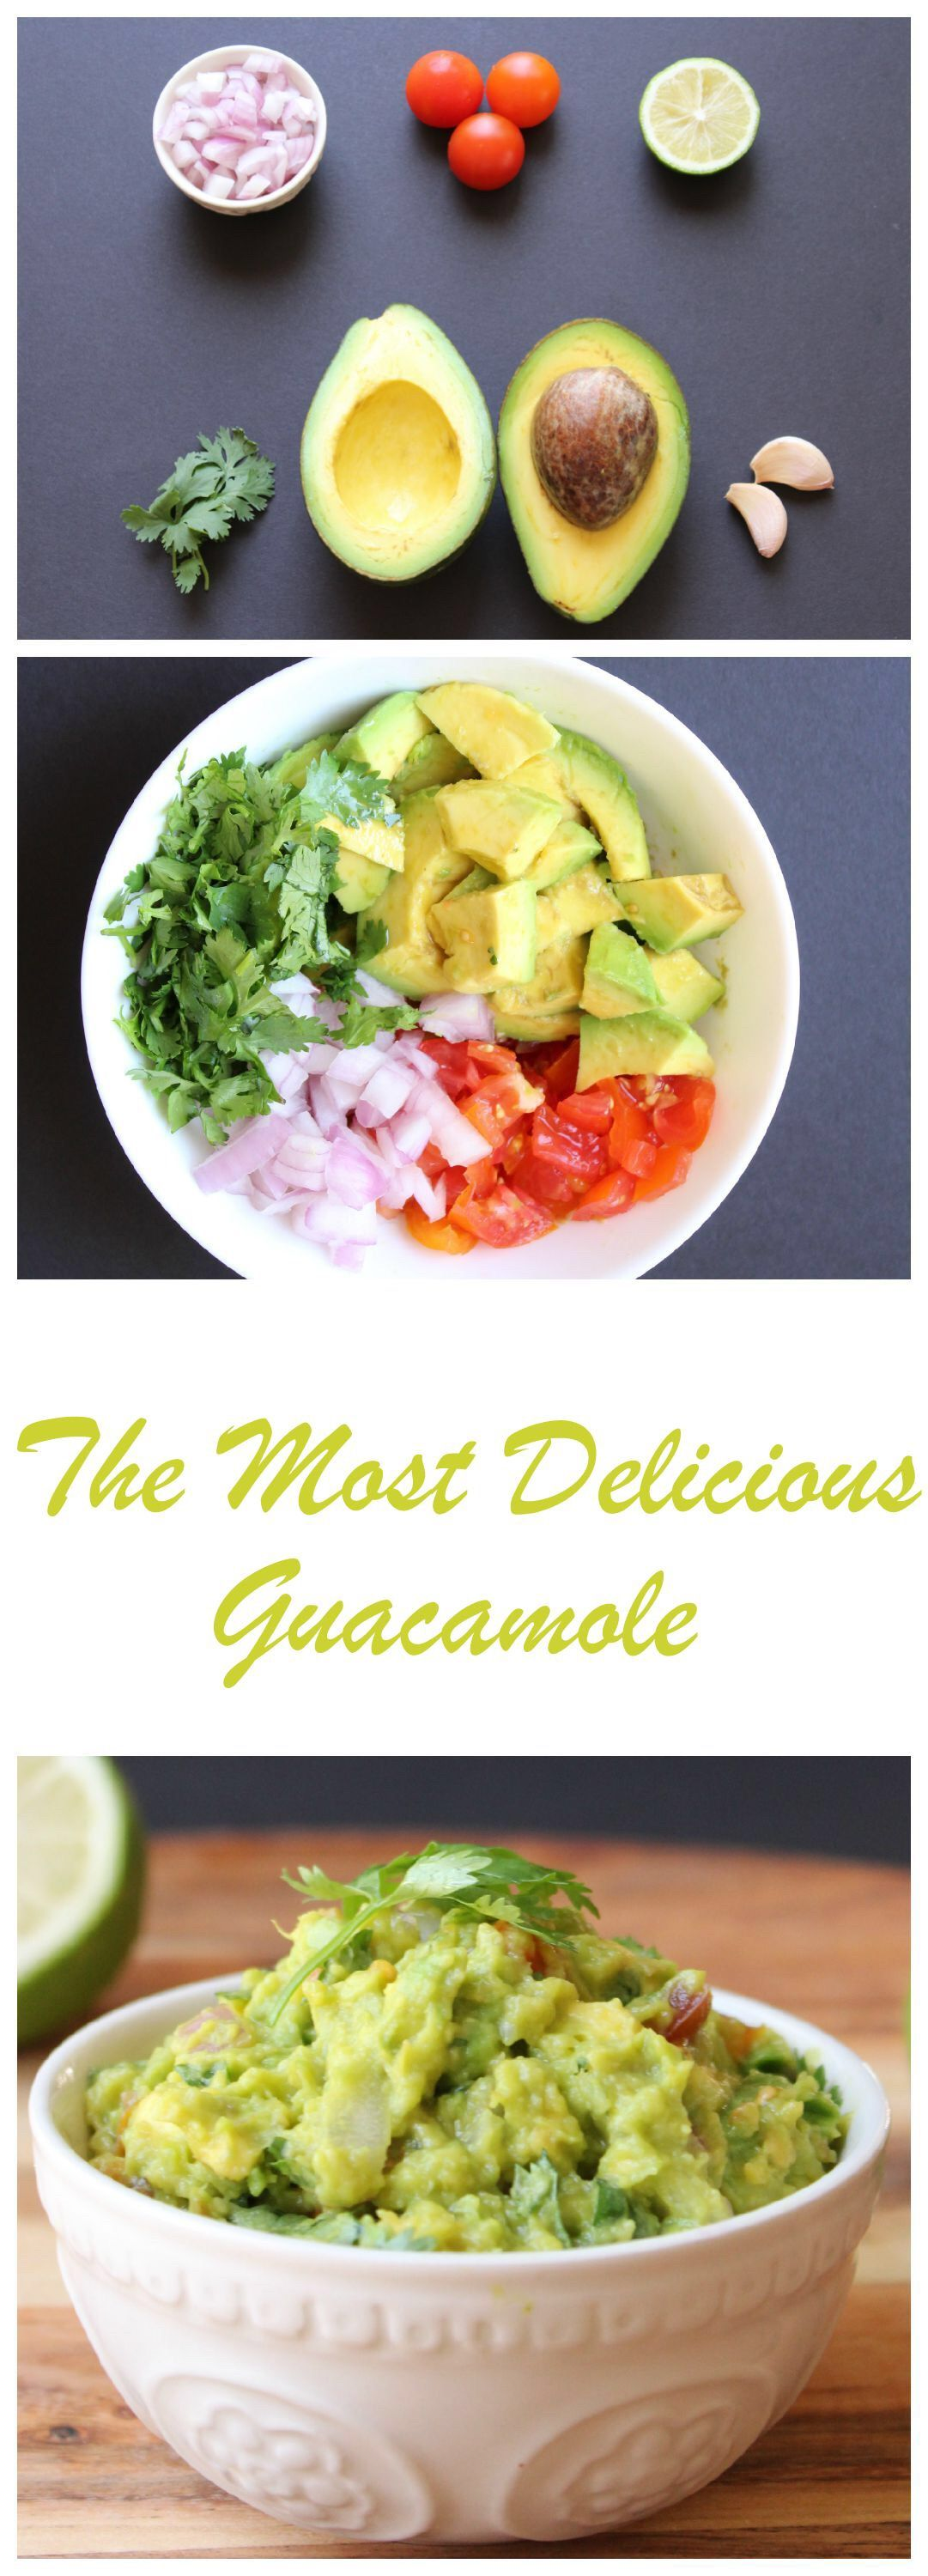 The most delicious guacamole recipe read more http the most delicious guacamole recipe read more httpfitgirlshabitsmexicanyoutubechannel ucor224boftmwq9pfw3o8xa forumfinder Gallery